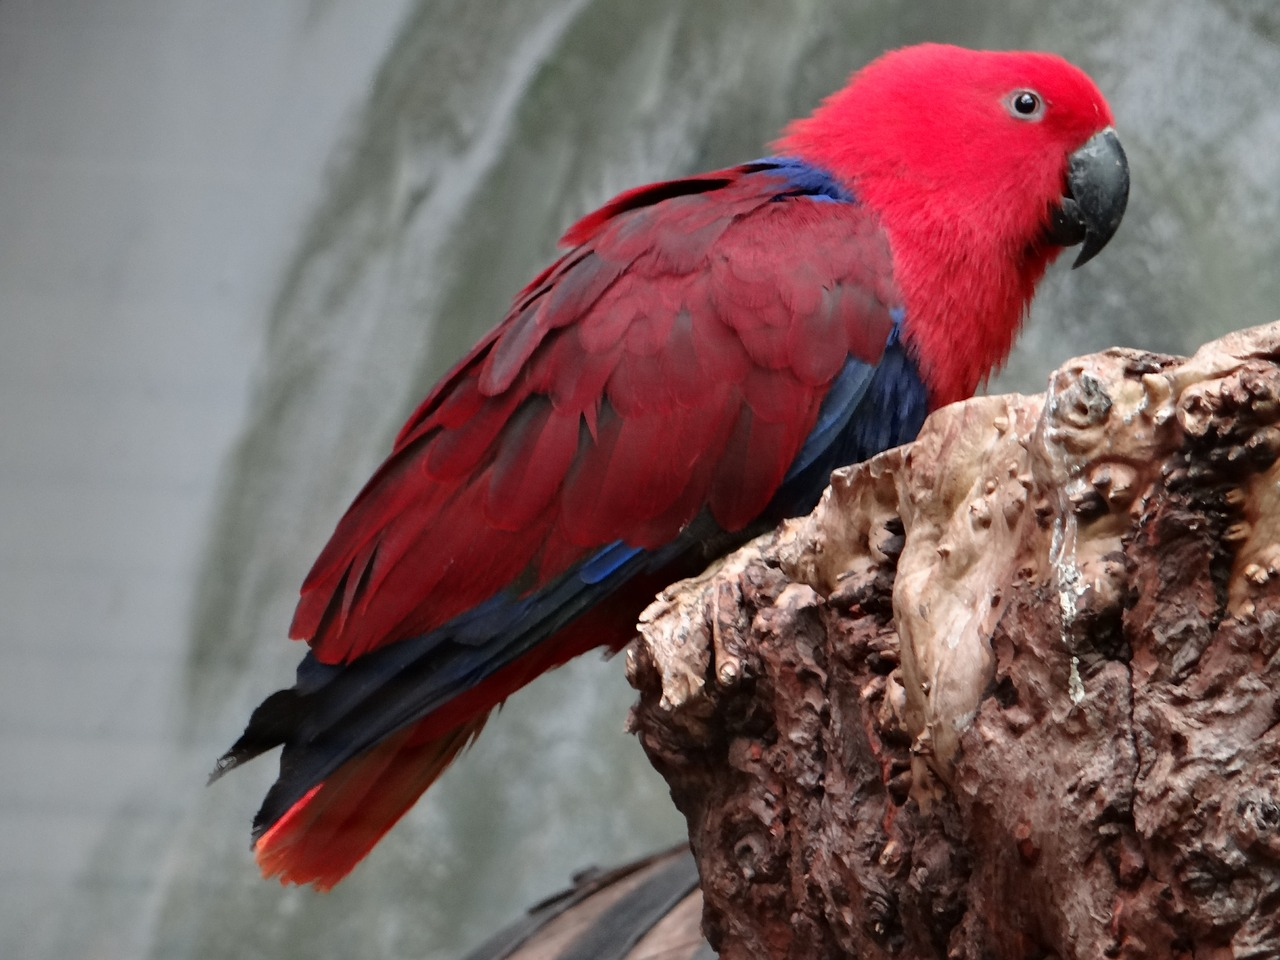 barwnica large parrot bird colorful free photo